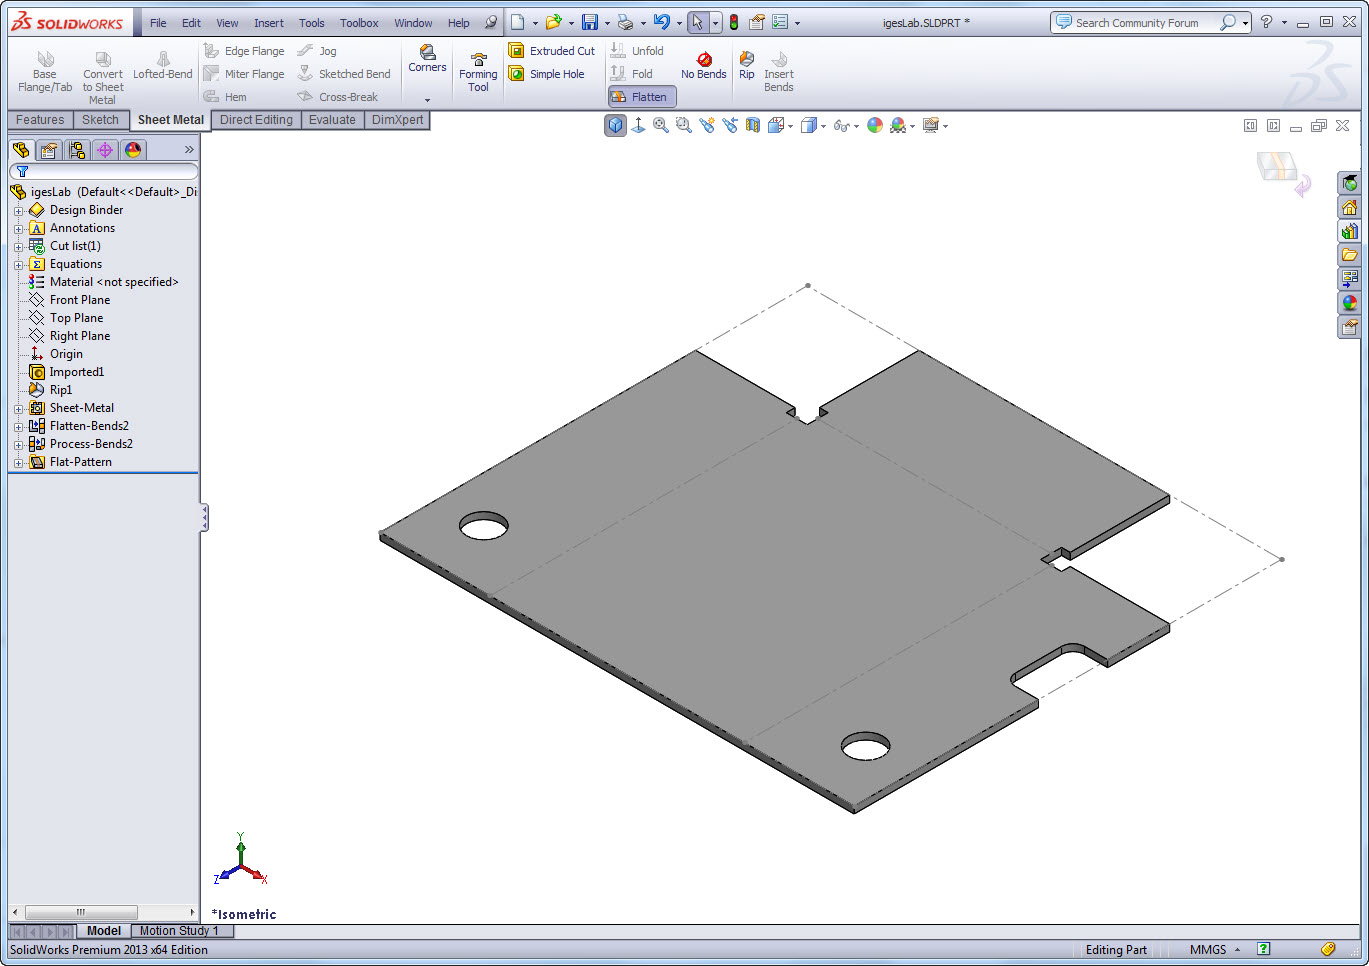 Convert to Sheet Metal in 3 easy steps (or as little as1